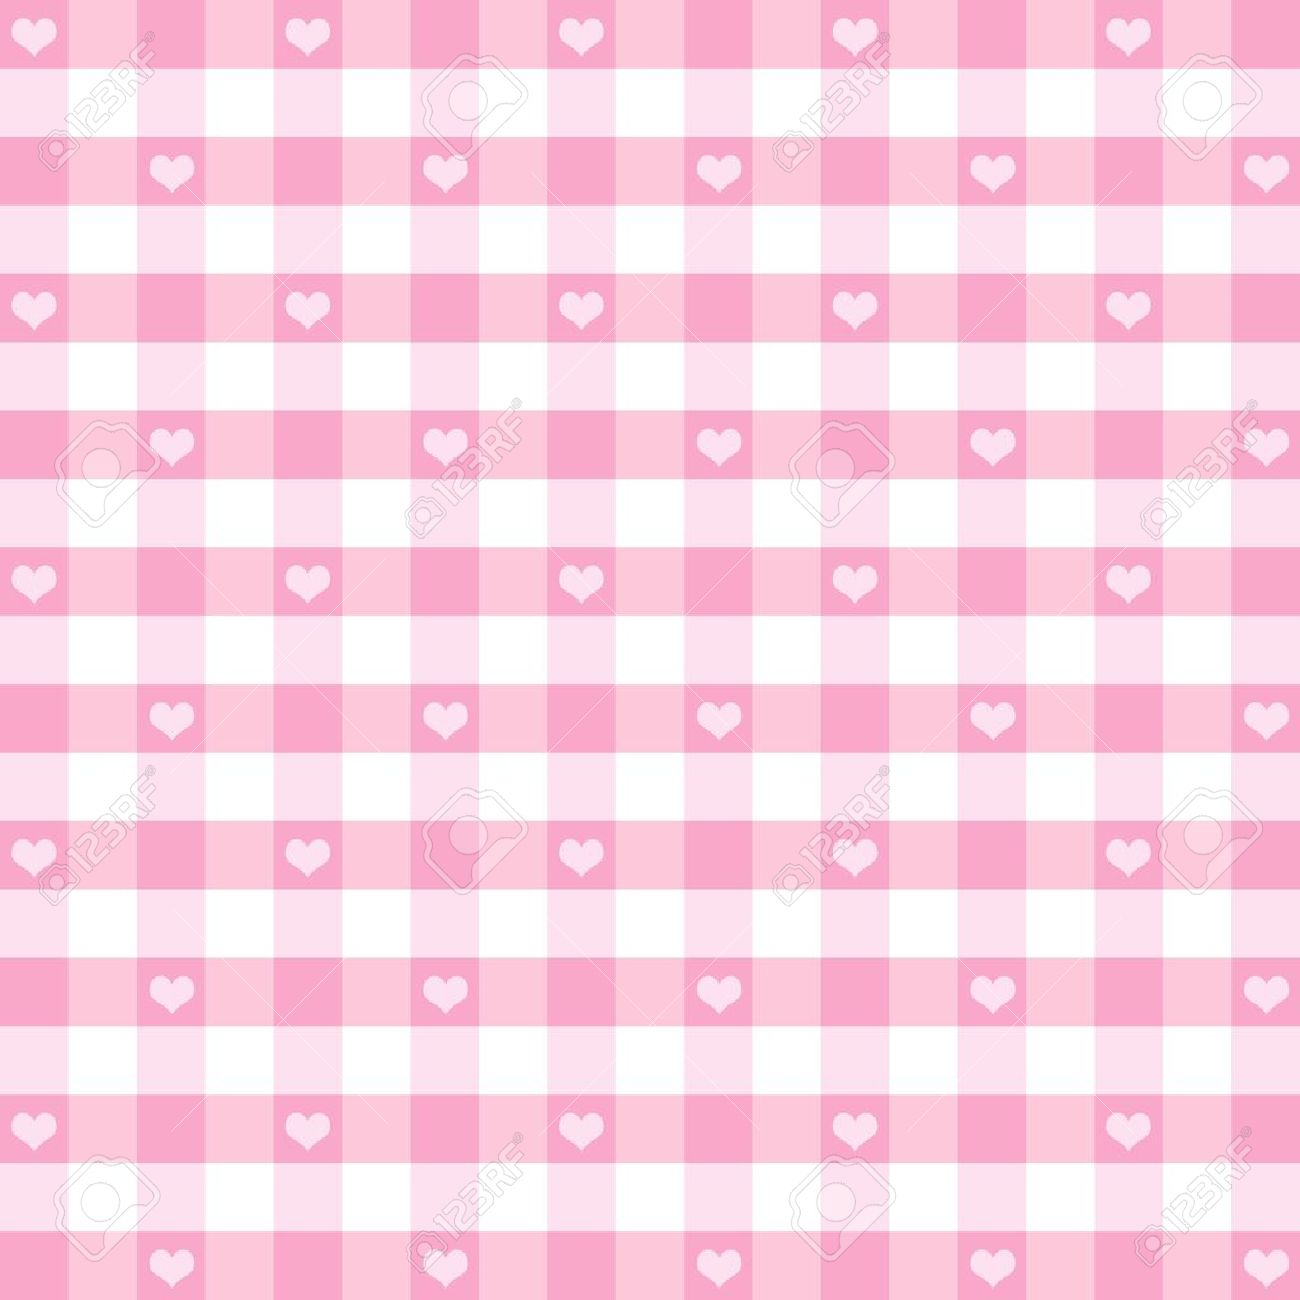 Seamless Gingham Pattern with Hearts, Pastel Pink, for scrapbooks, albums, baby books, decorating. Stock Vector - 12136860